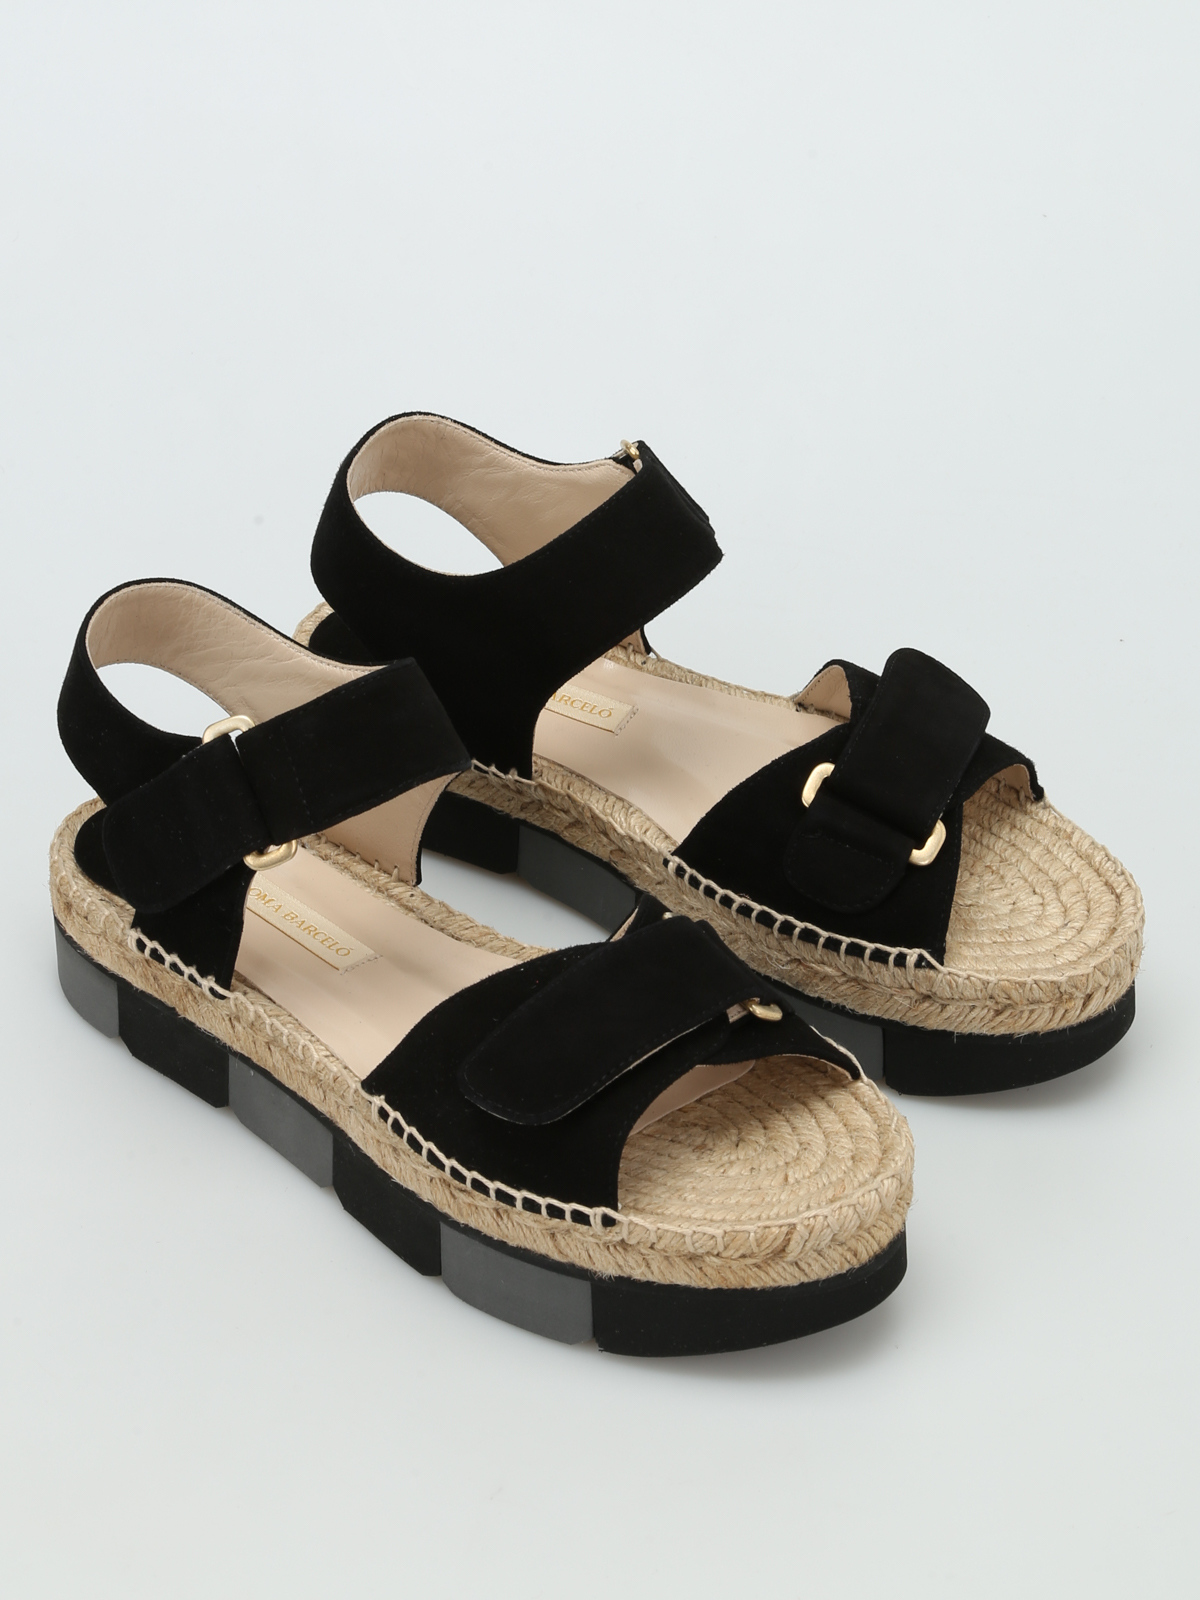 Bersac Velcro Strap Sandals By Paloma Barcel 242 Sandals